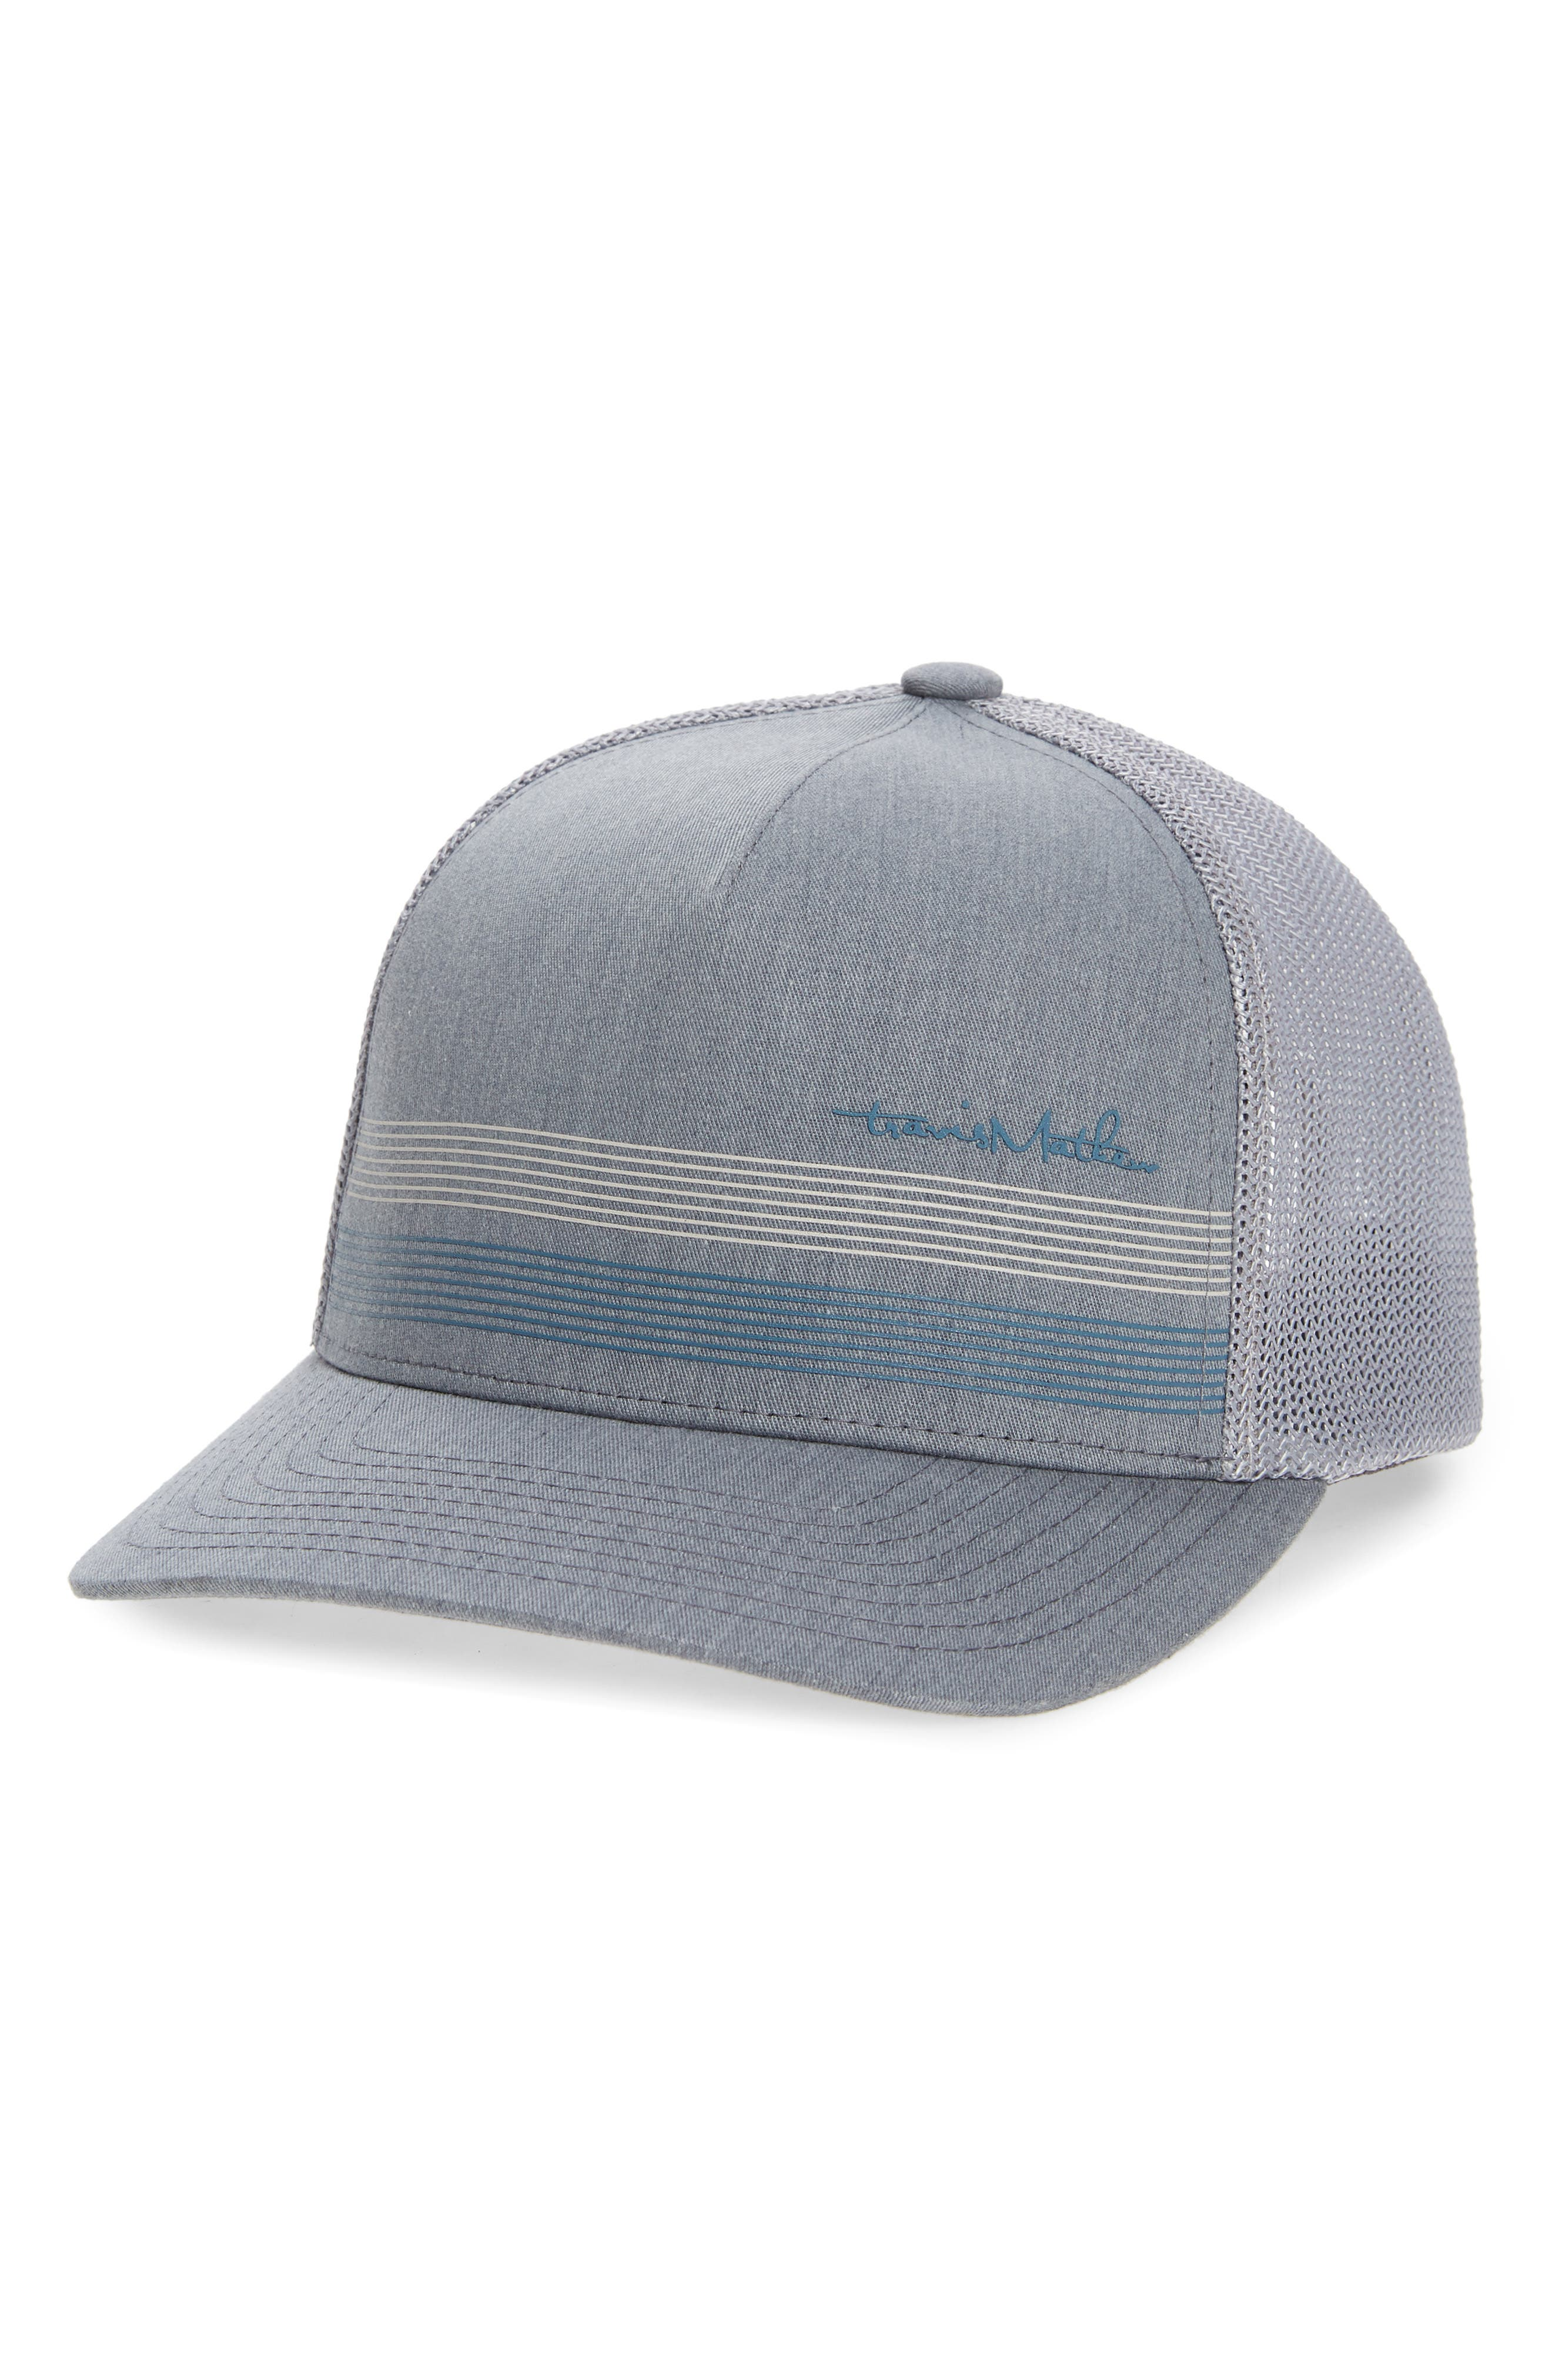 Kick back in style in this hat featuring a mesh-paneled back and striped front design. Style Name: Travismatthew Long Way Home Trucker Hat. Style Number: 6121088. Available in stores.